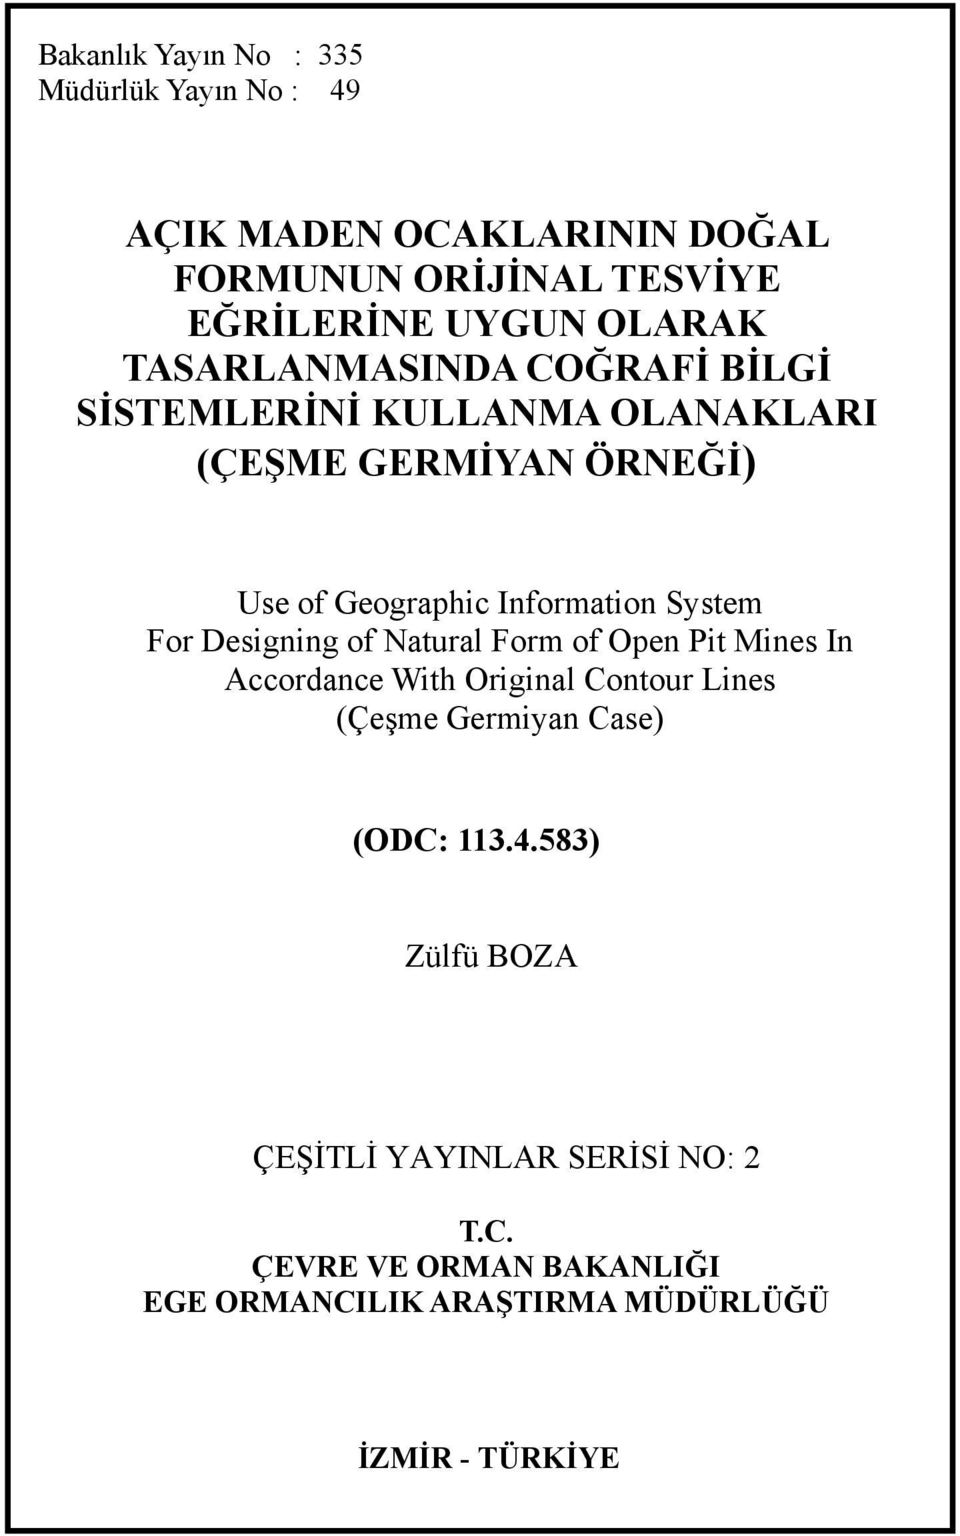 For Designing of Natural Form of Open Pit Mines In Accordance With Original Contour Lines (Çeşme Germiyan Case) (ODC: 113.4.